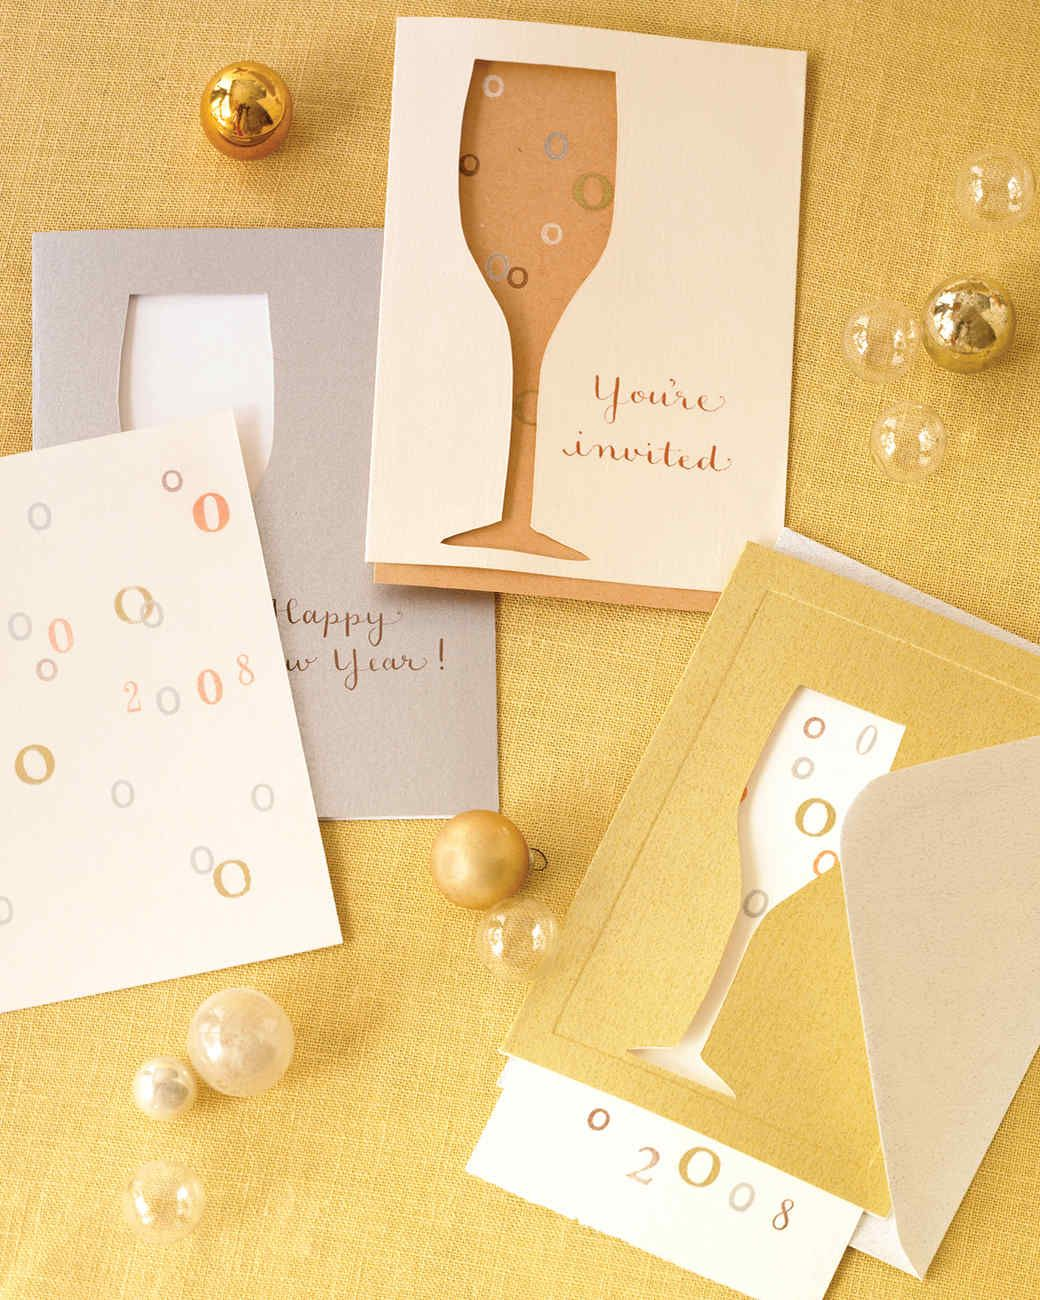 clip art and templates for new years martha stewart living were sharing our favorite clip art and templates for a perfect new years celebration